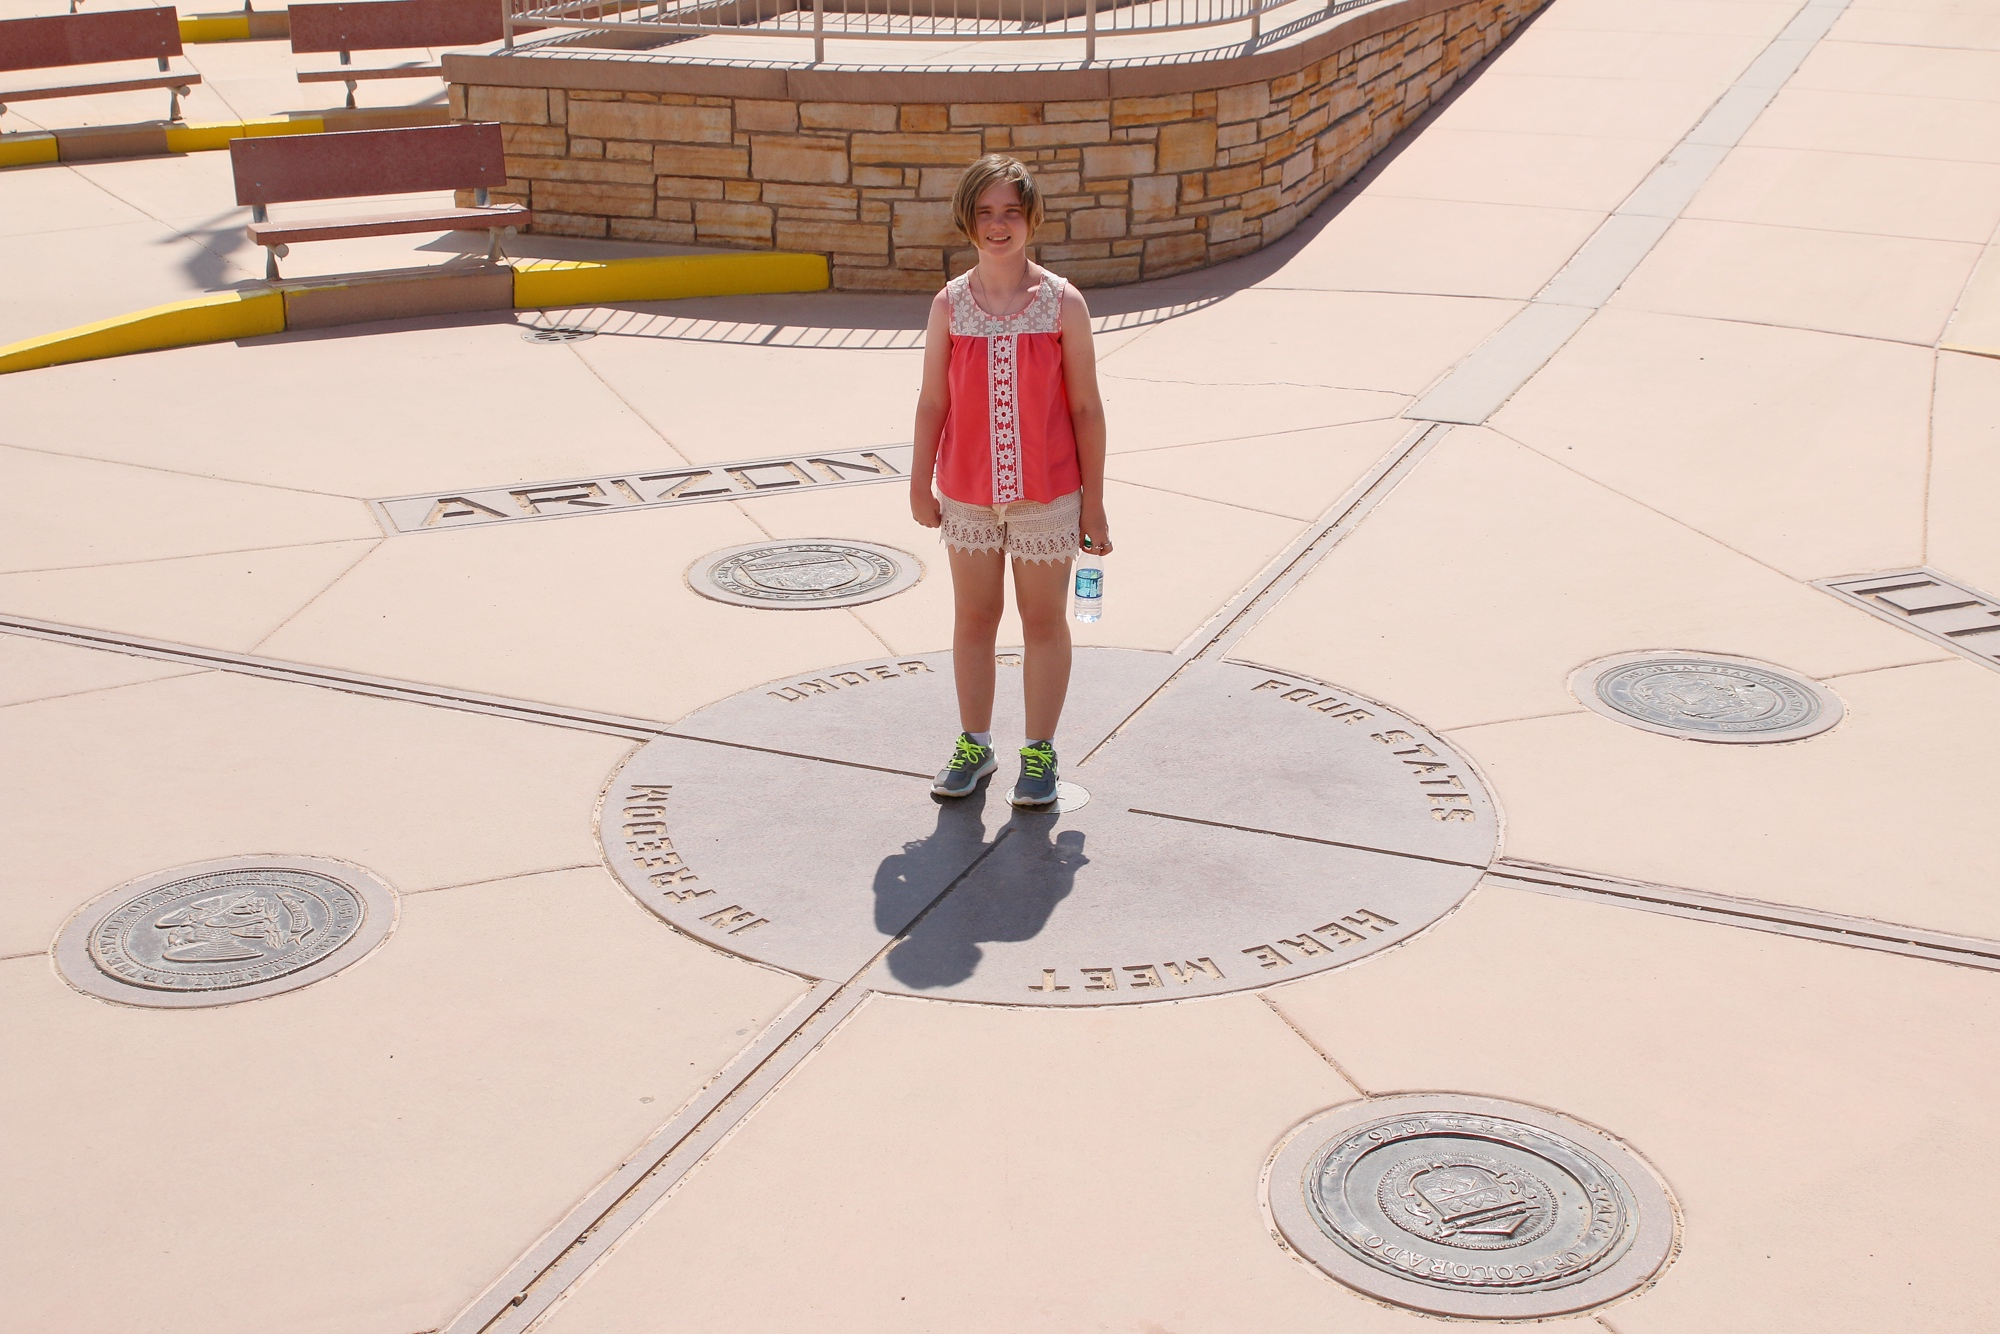 Gabby at four corners monument